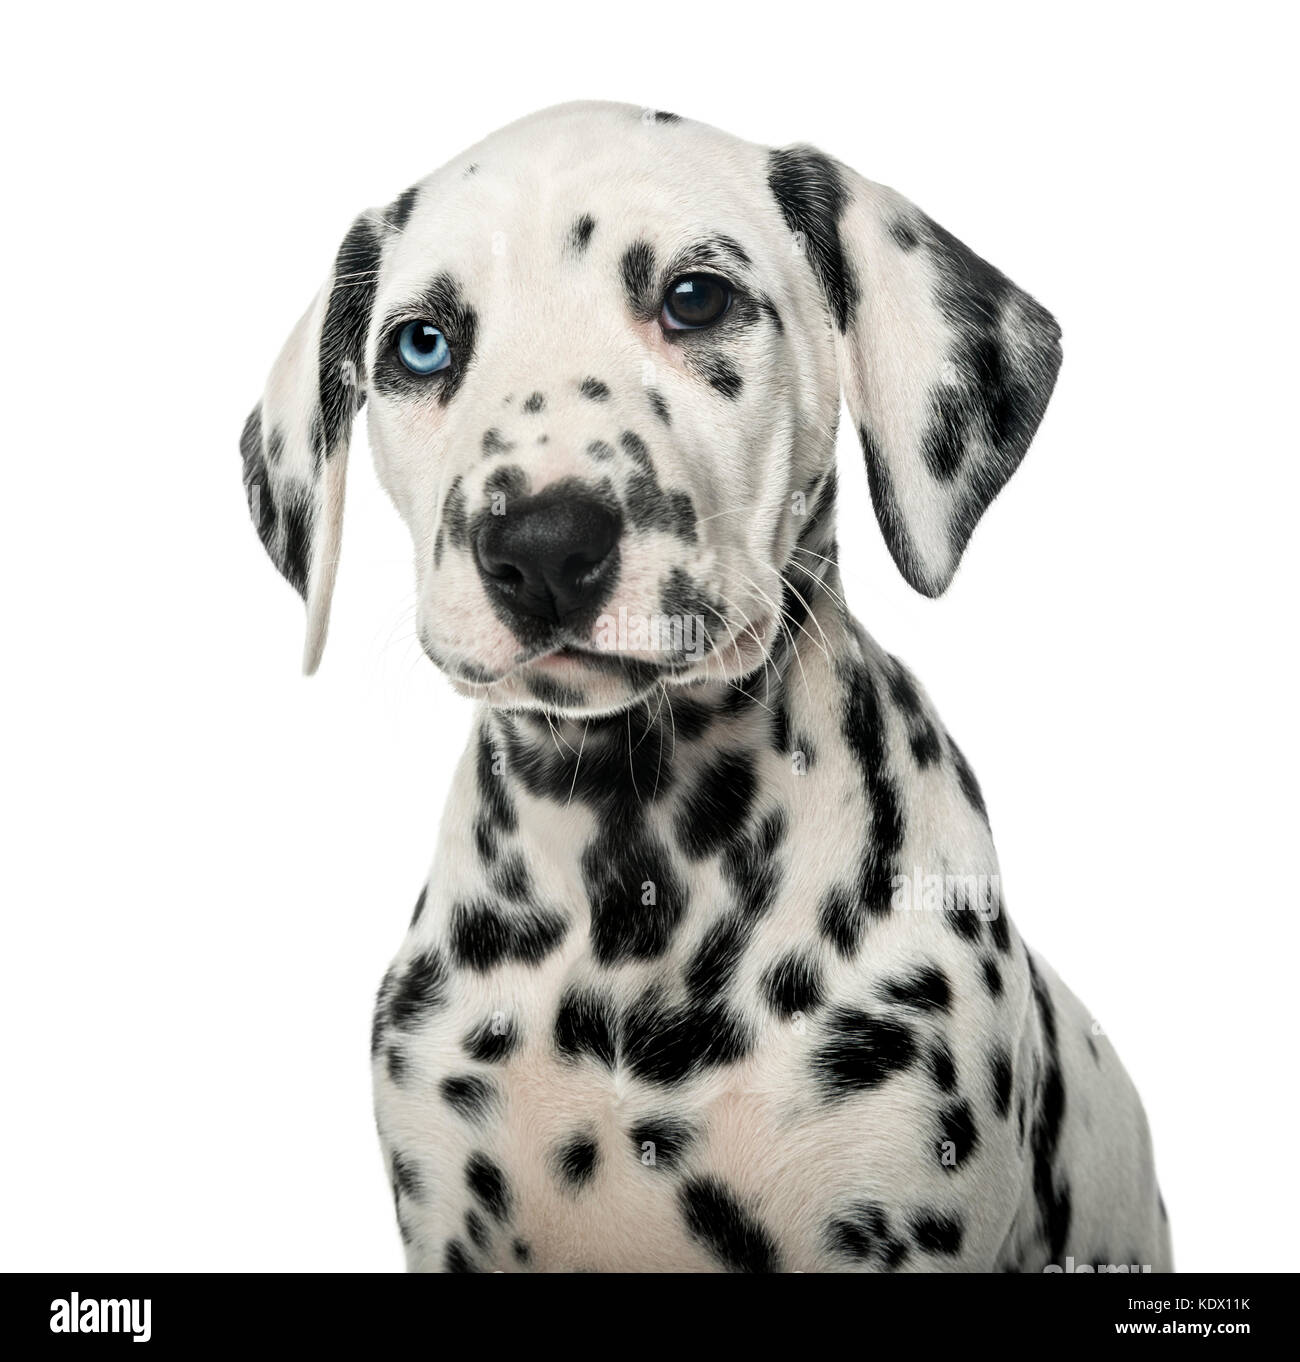 Close-up of a Dalmatian puppy in front of a white background - Stock Image